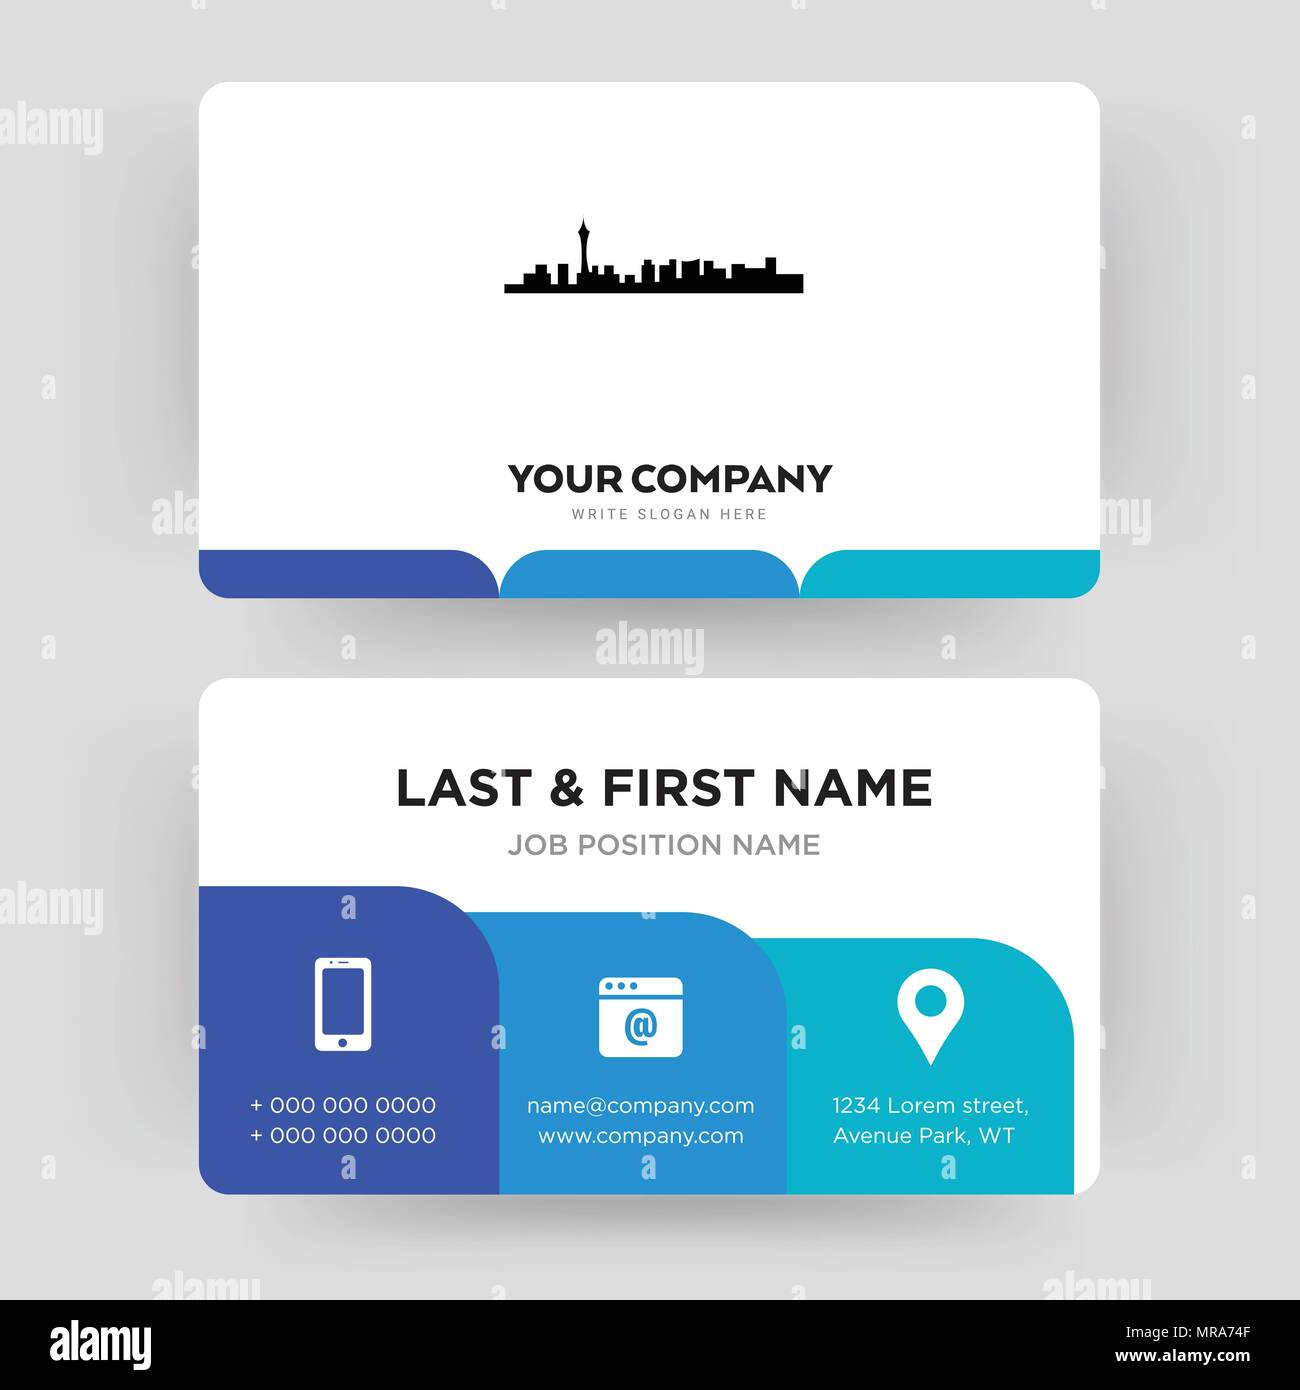 las vegas business card design template visiting for your company modern creative and clean identity card vector - Business Cards Las Vegas